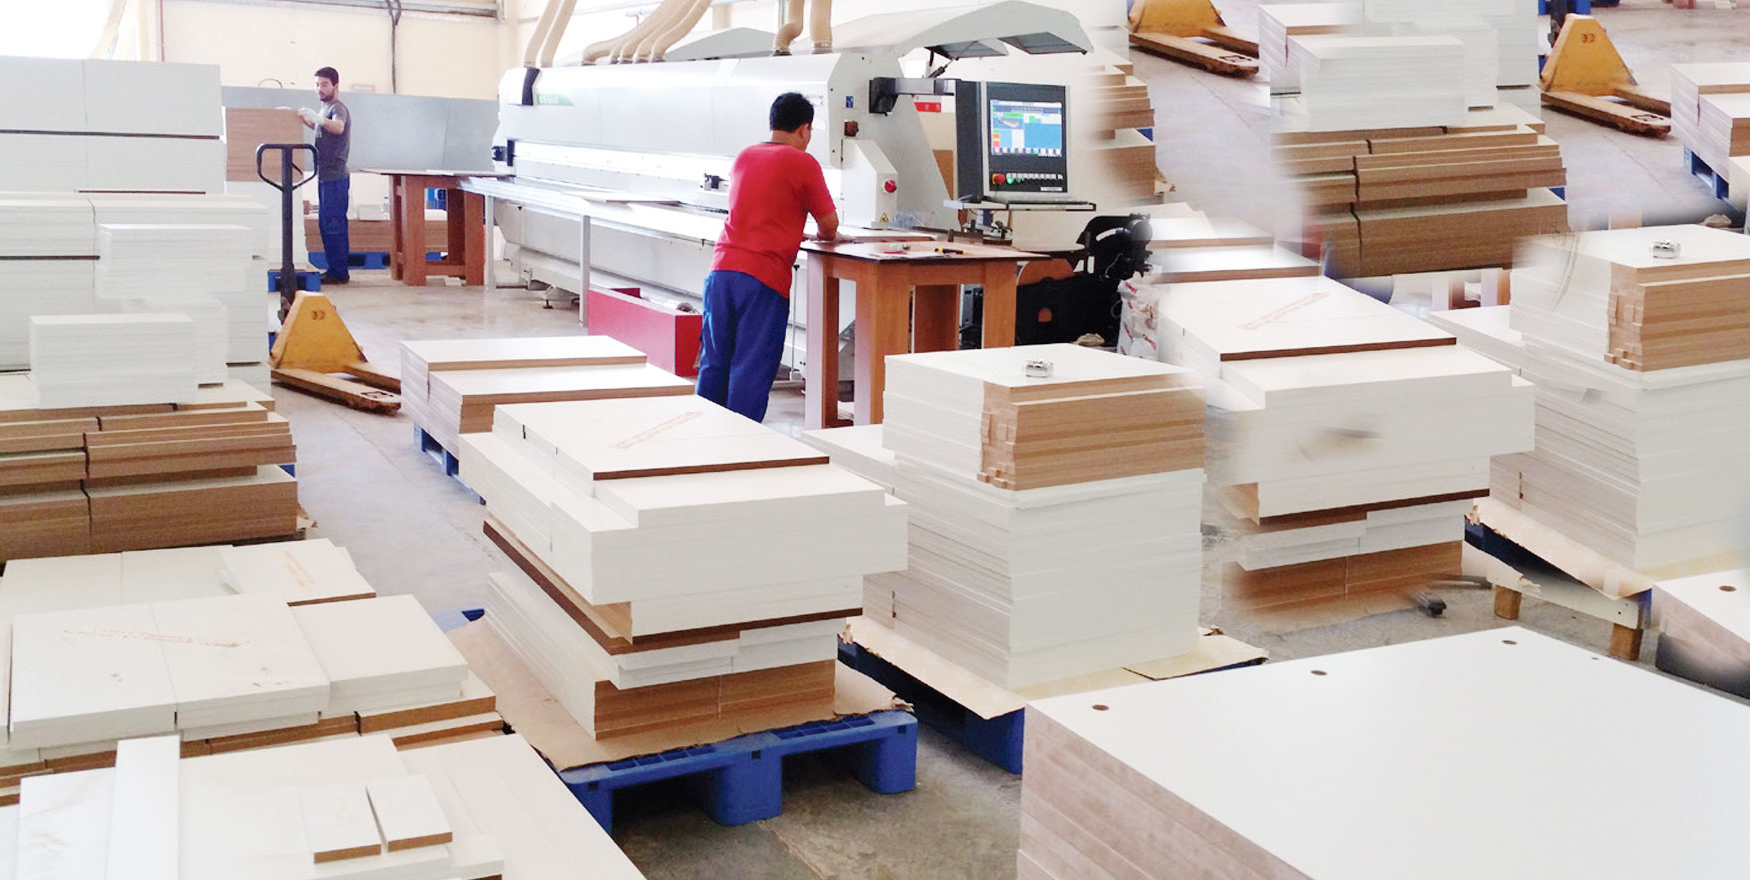 usa furniture manufacturing industry The industryweek 50 best us manufacturers is iw's exclusive annual ranking of america's top-performing public manufacturers use this free database to view the 2015 iw 50 us best to sort the list alphabetically, or by ranking, industry, and financial performance measures to sort the list, click.